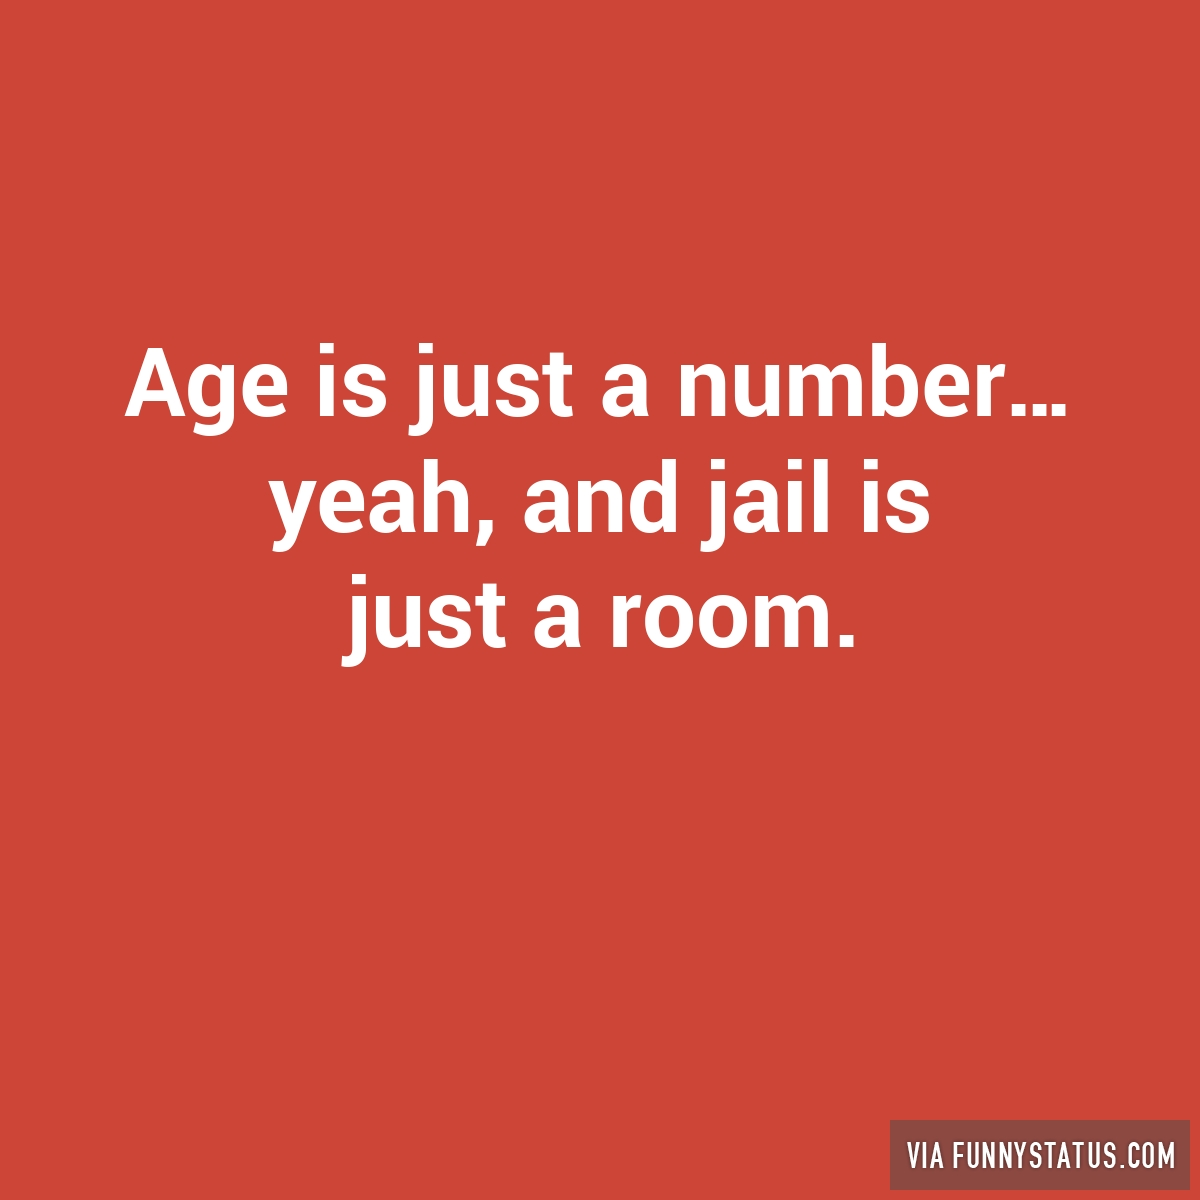 Age just number